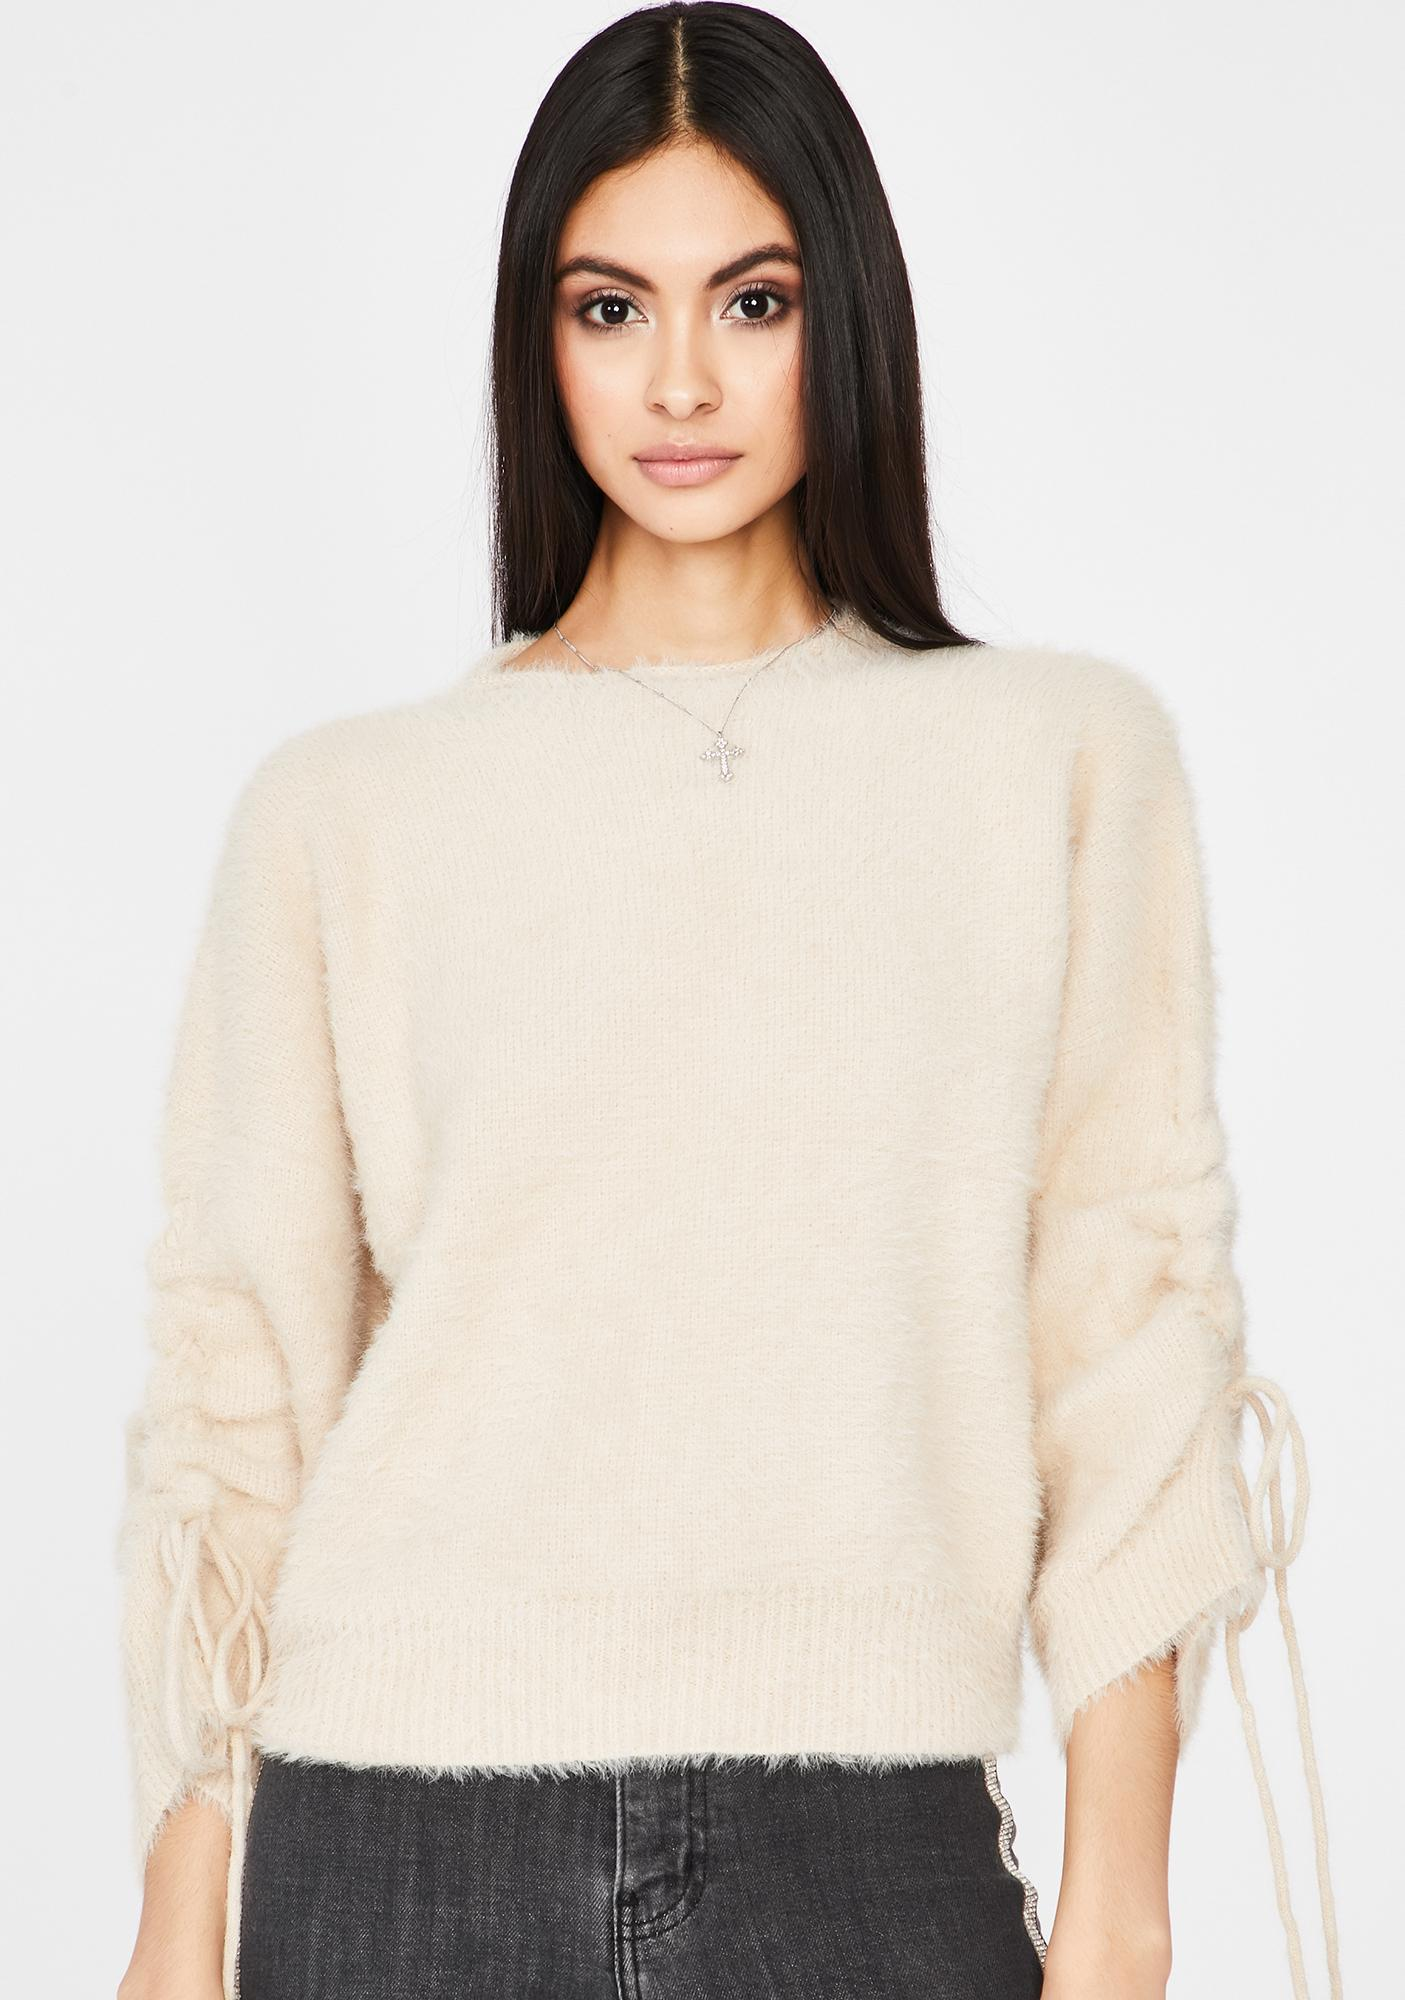 Icy Dream Doll Knit Sweater